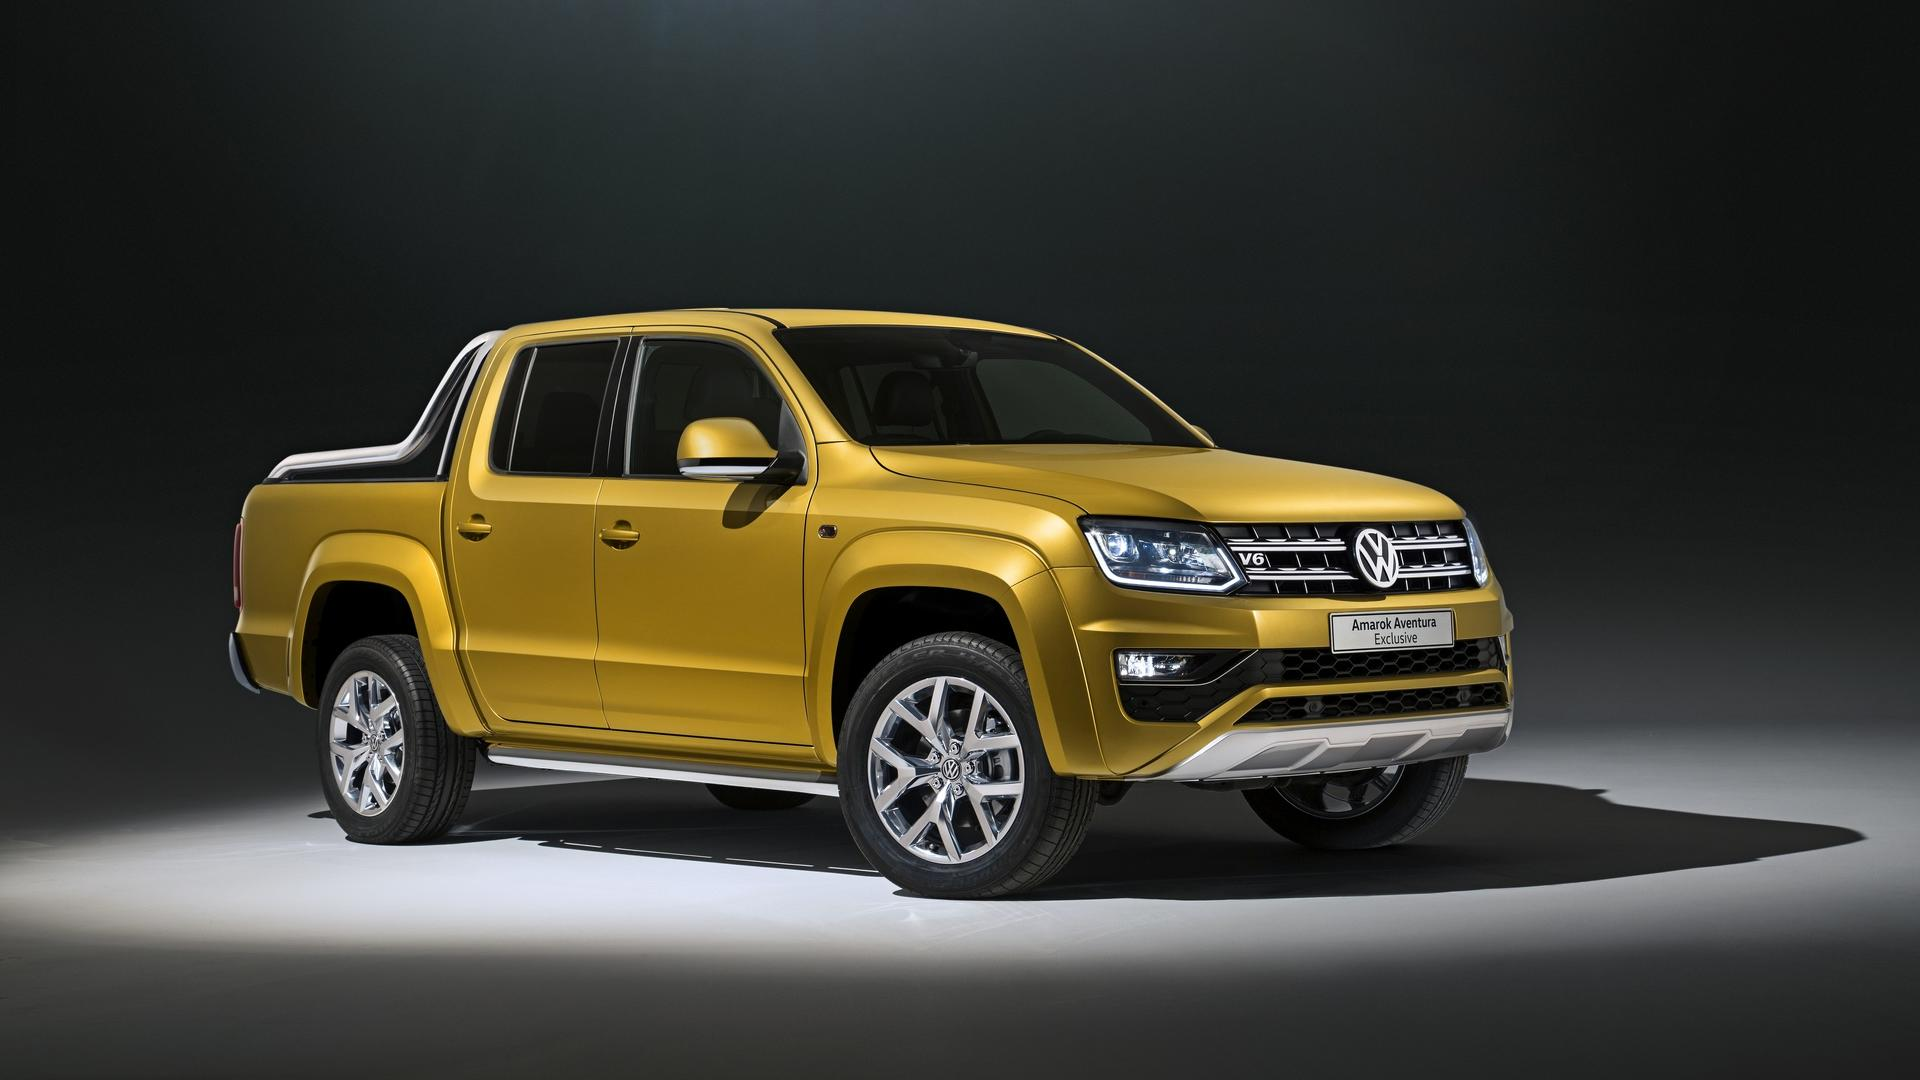 Vw Amarok Successor Could Come To U S With Help From Ford